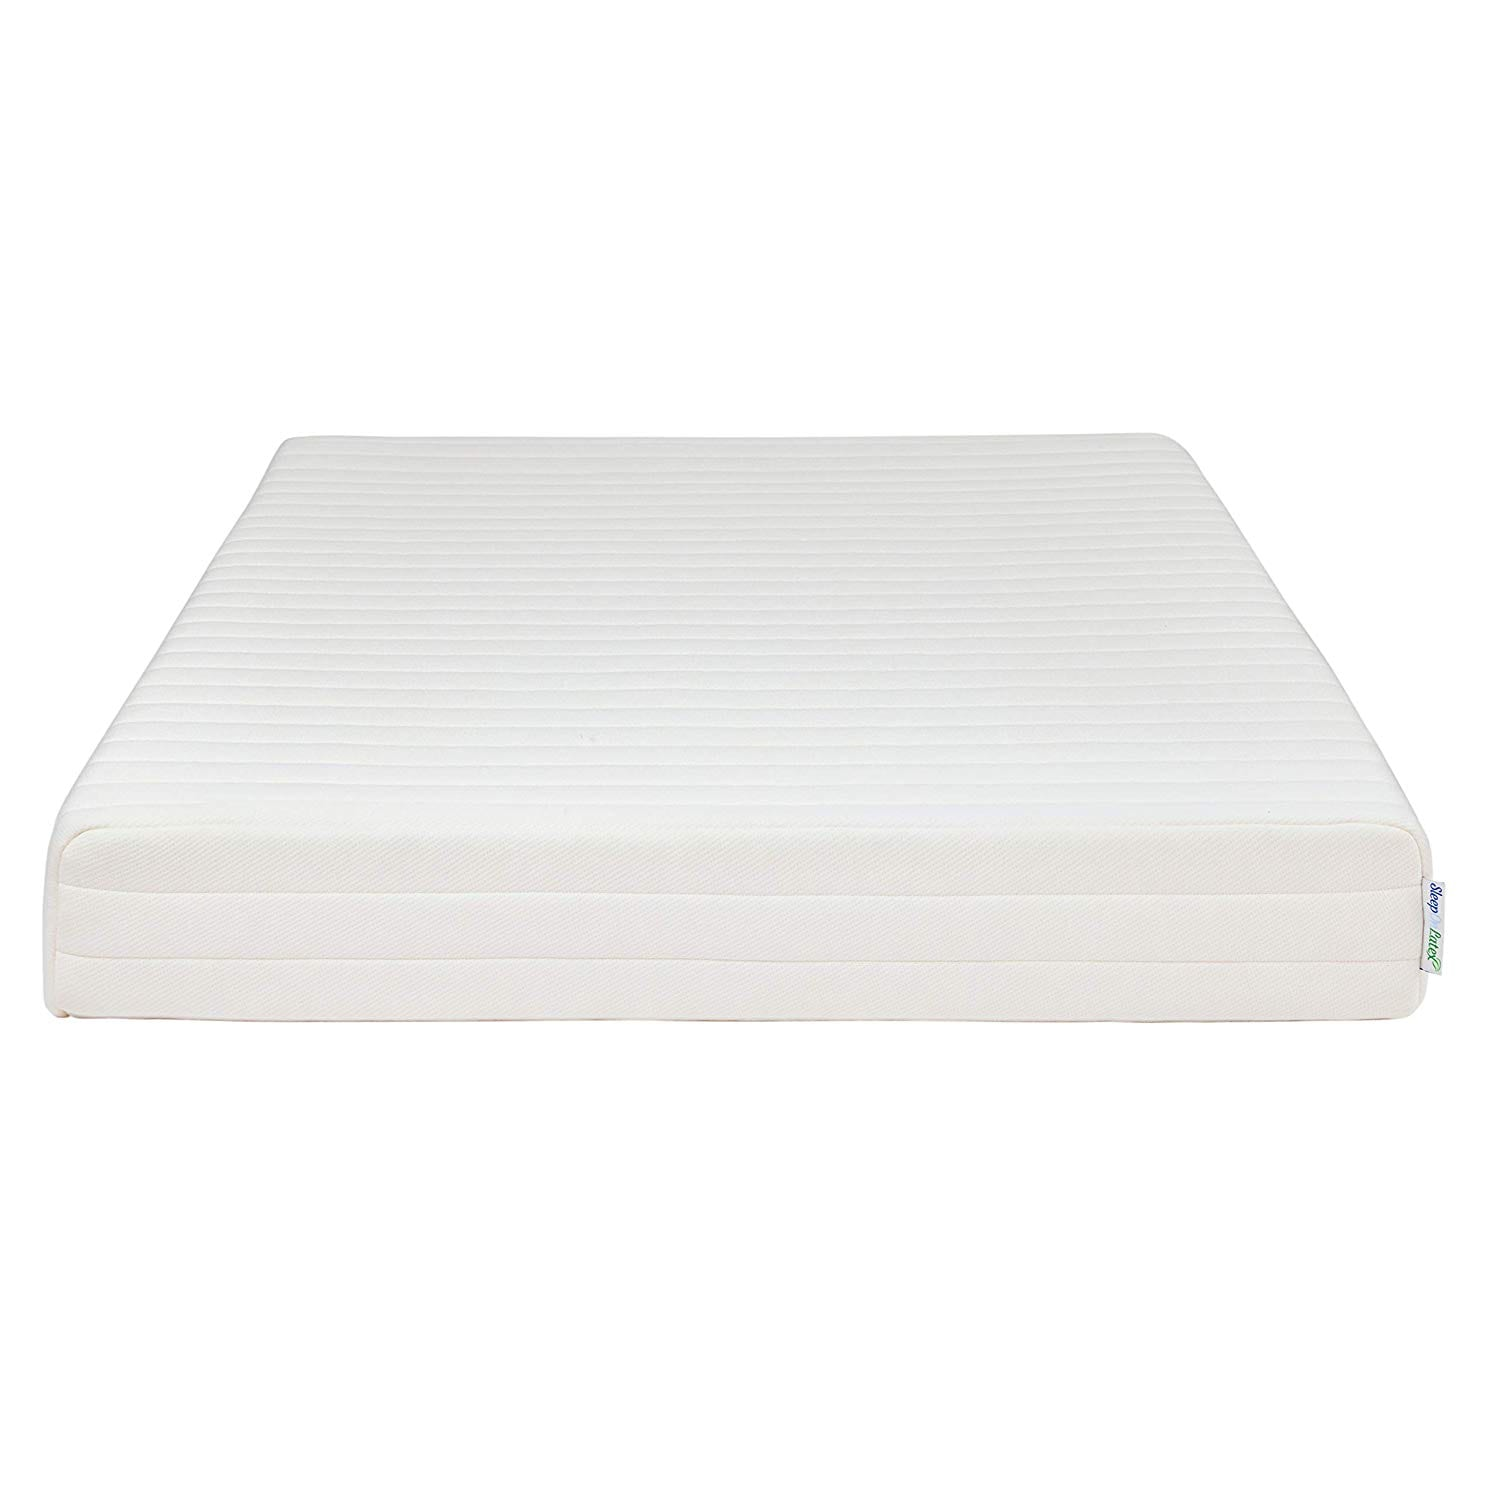 Sleep On Latex Best Firm Mattresses Review By www.snoremagazine.com